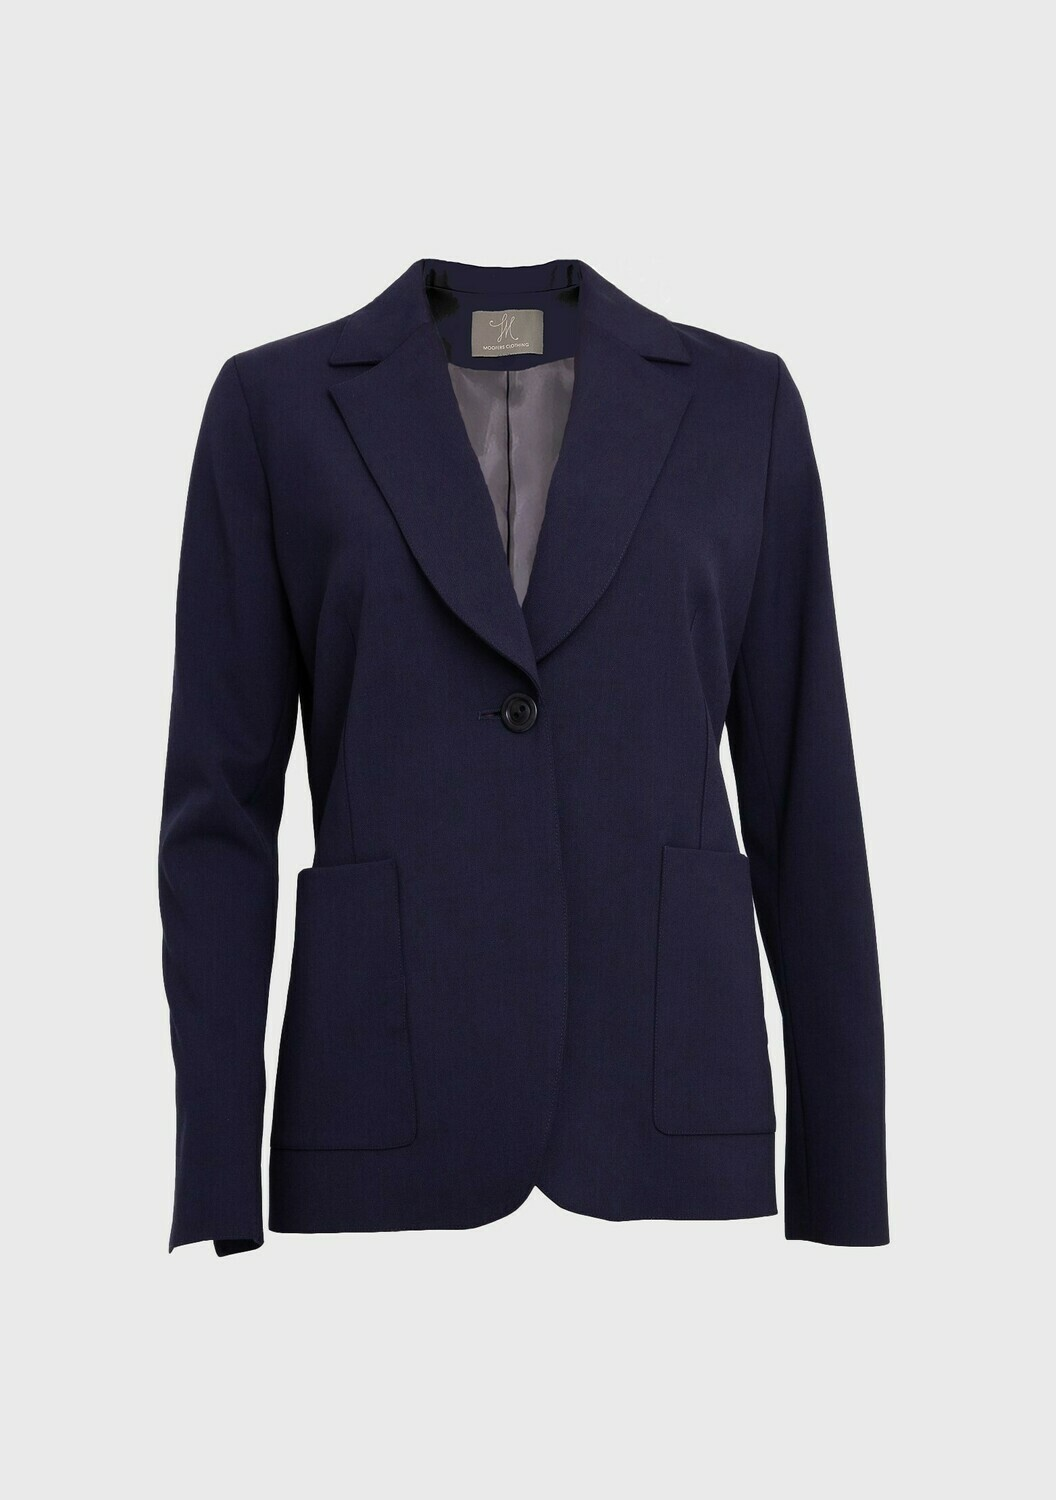 PATCH POCKET SOFT TAILORED JACKET IN NAVY